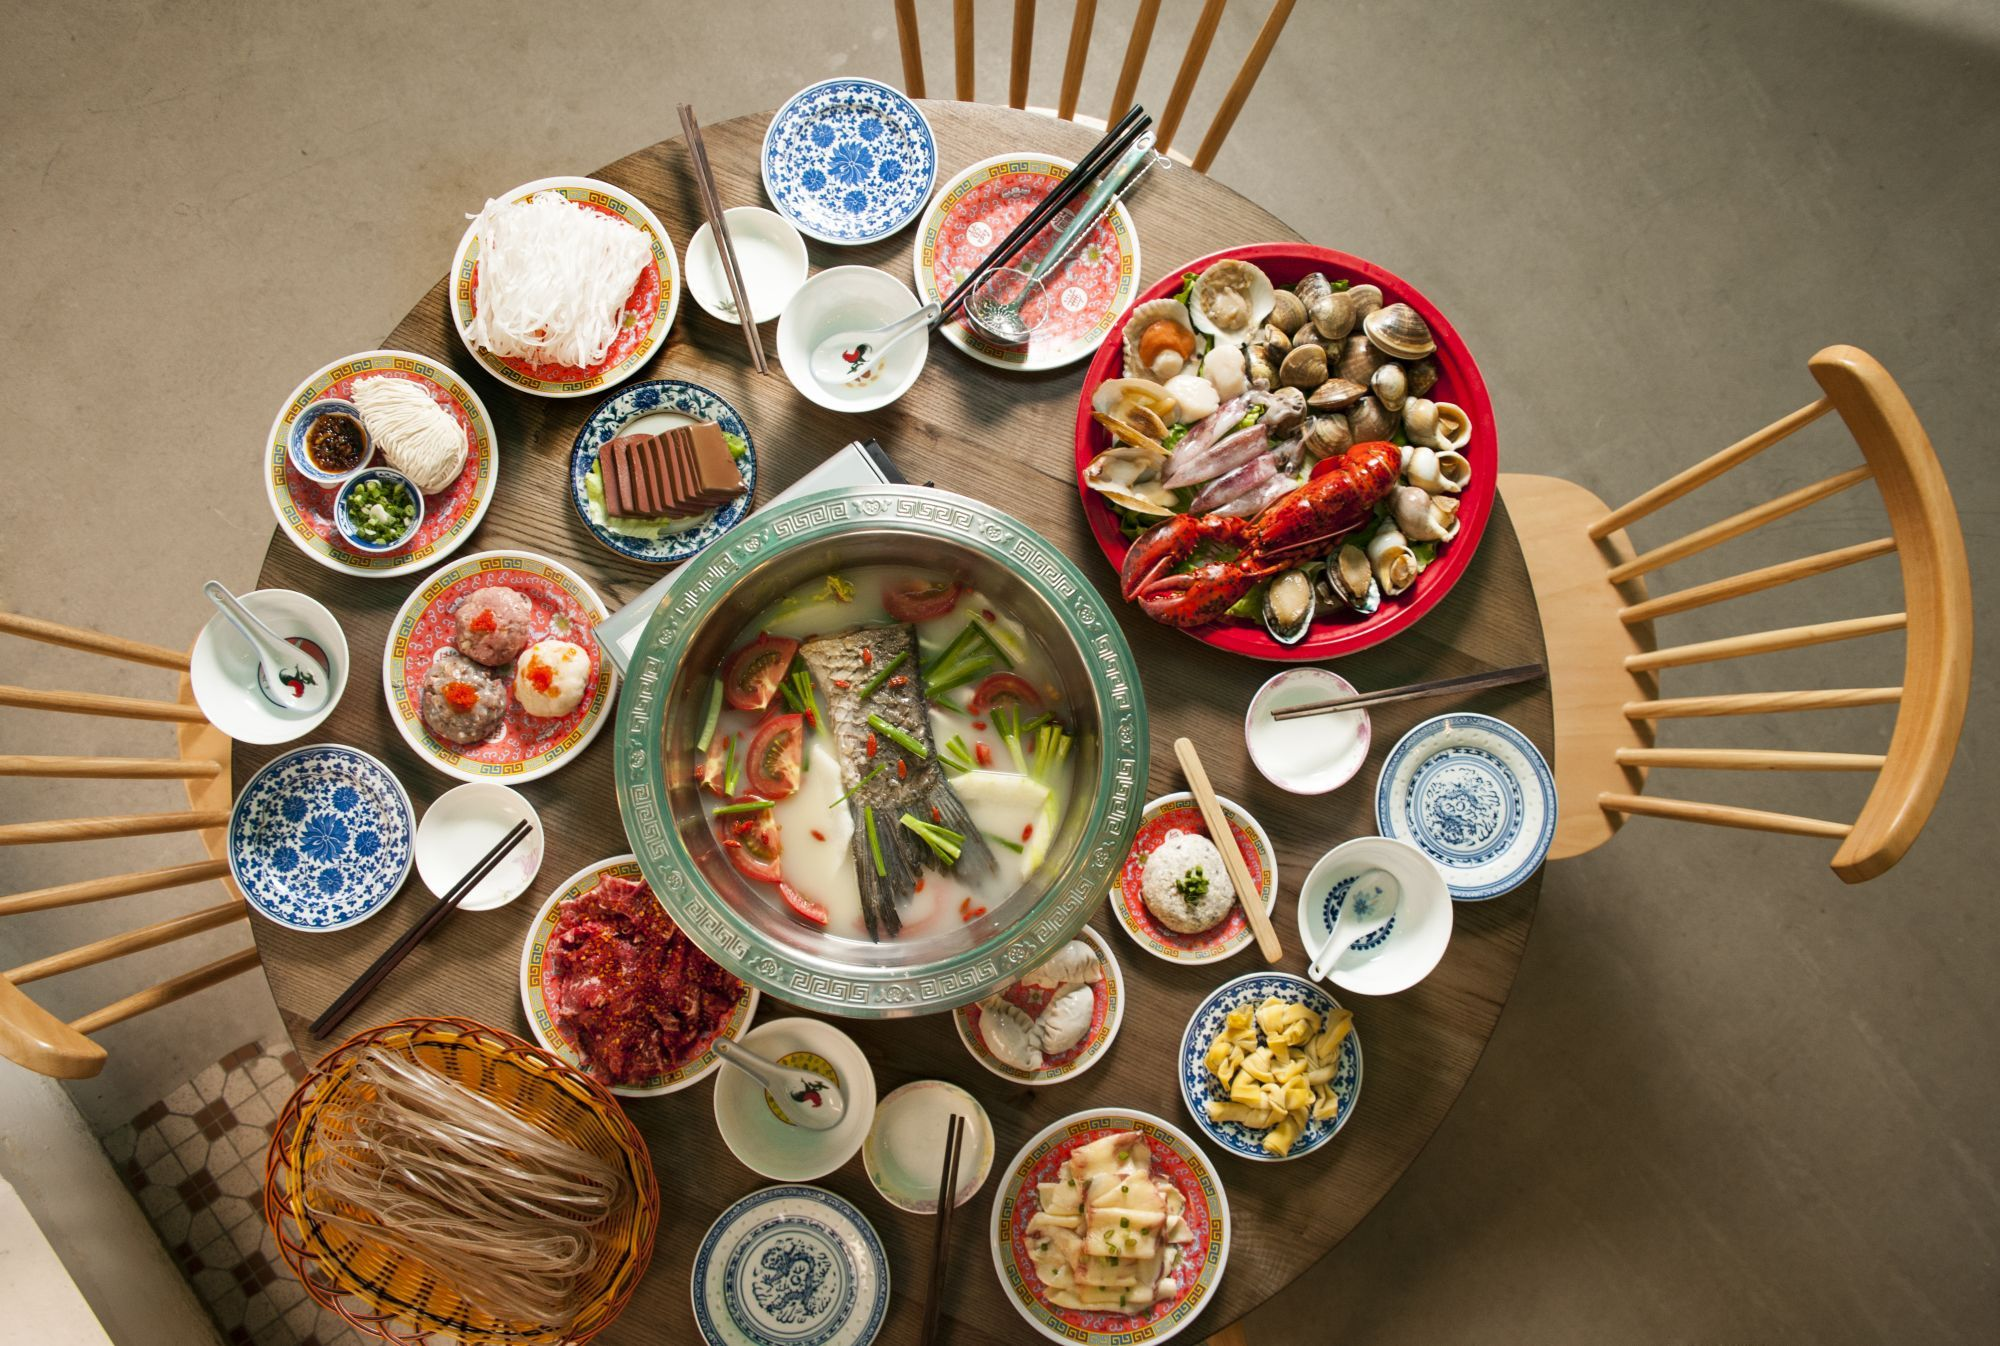 A Humble History of Hotpot, and 4 of the Best Hotpot Restaurants in Singapore